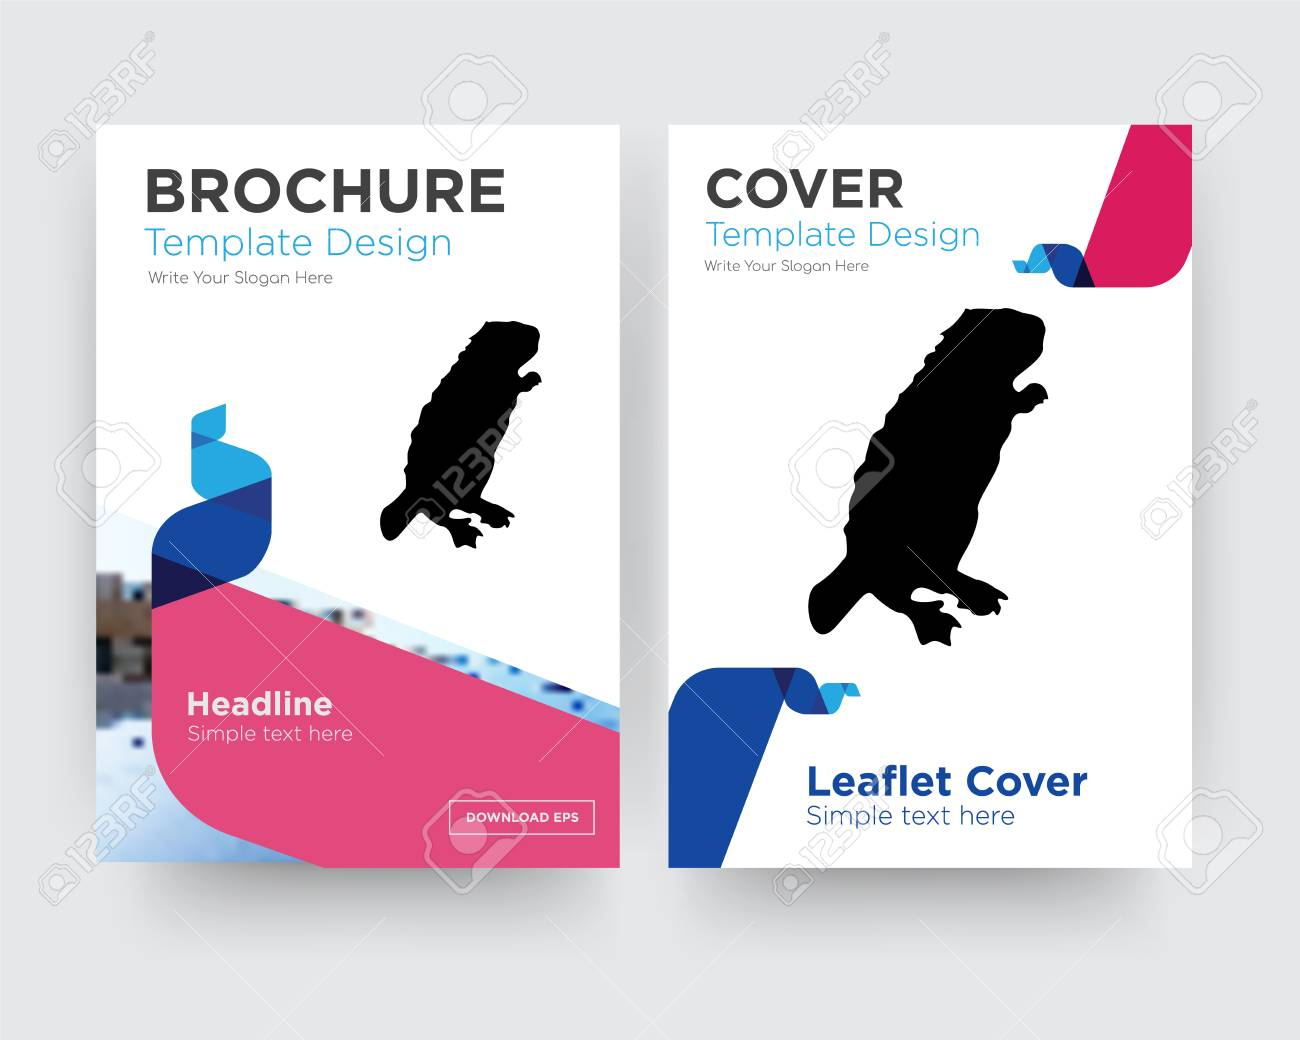 Beaver Brochure Flyer Design Template With Abstract Photo Background